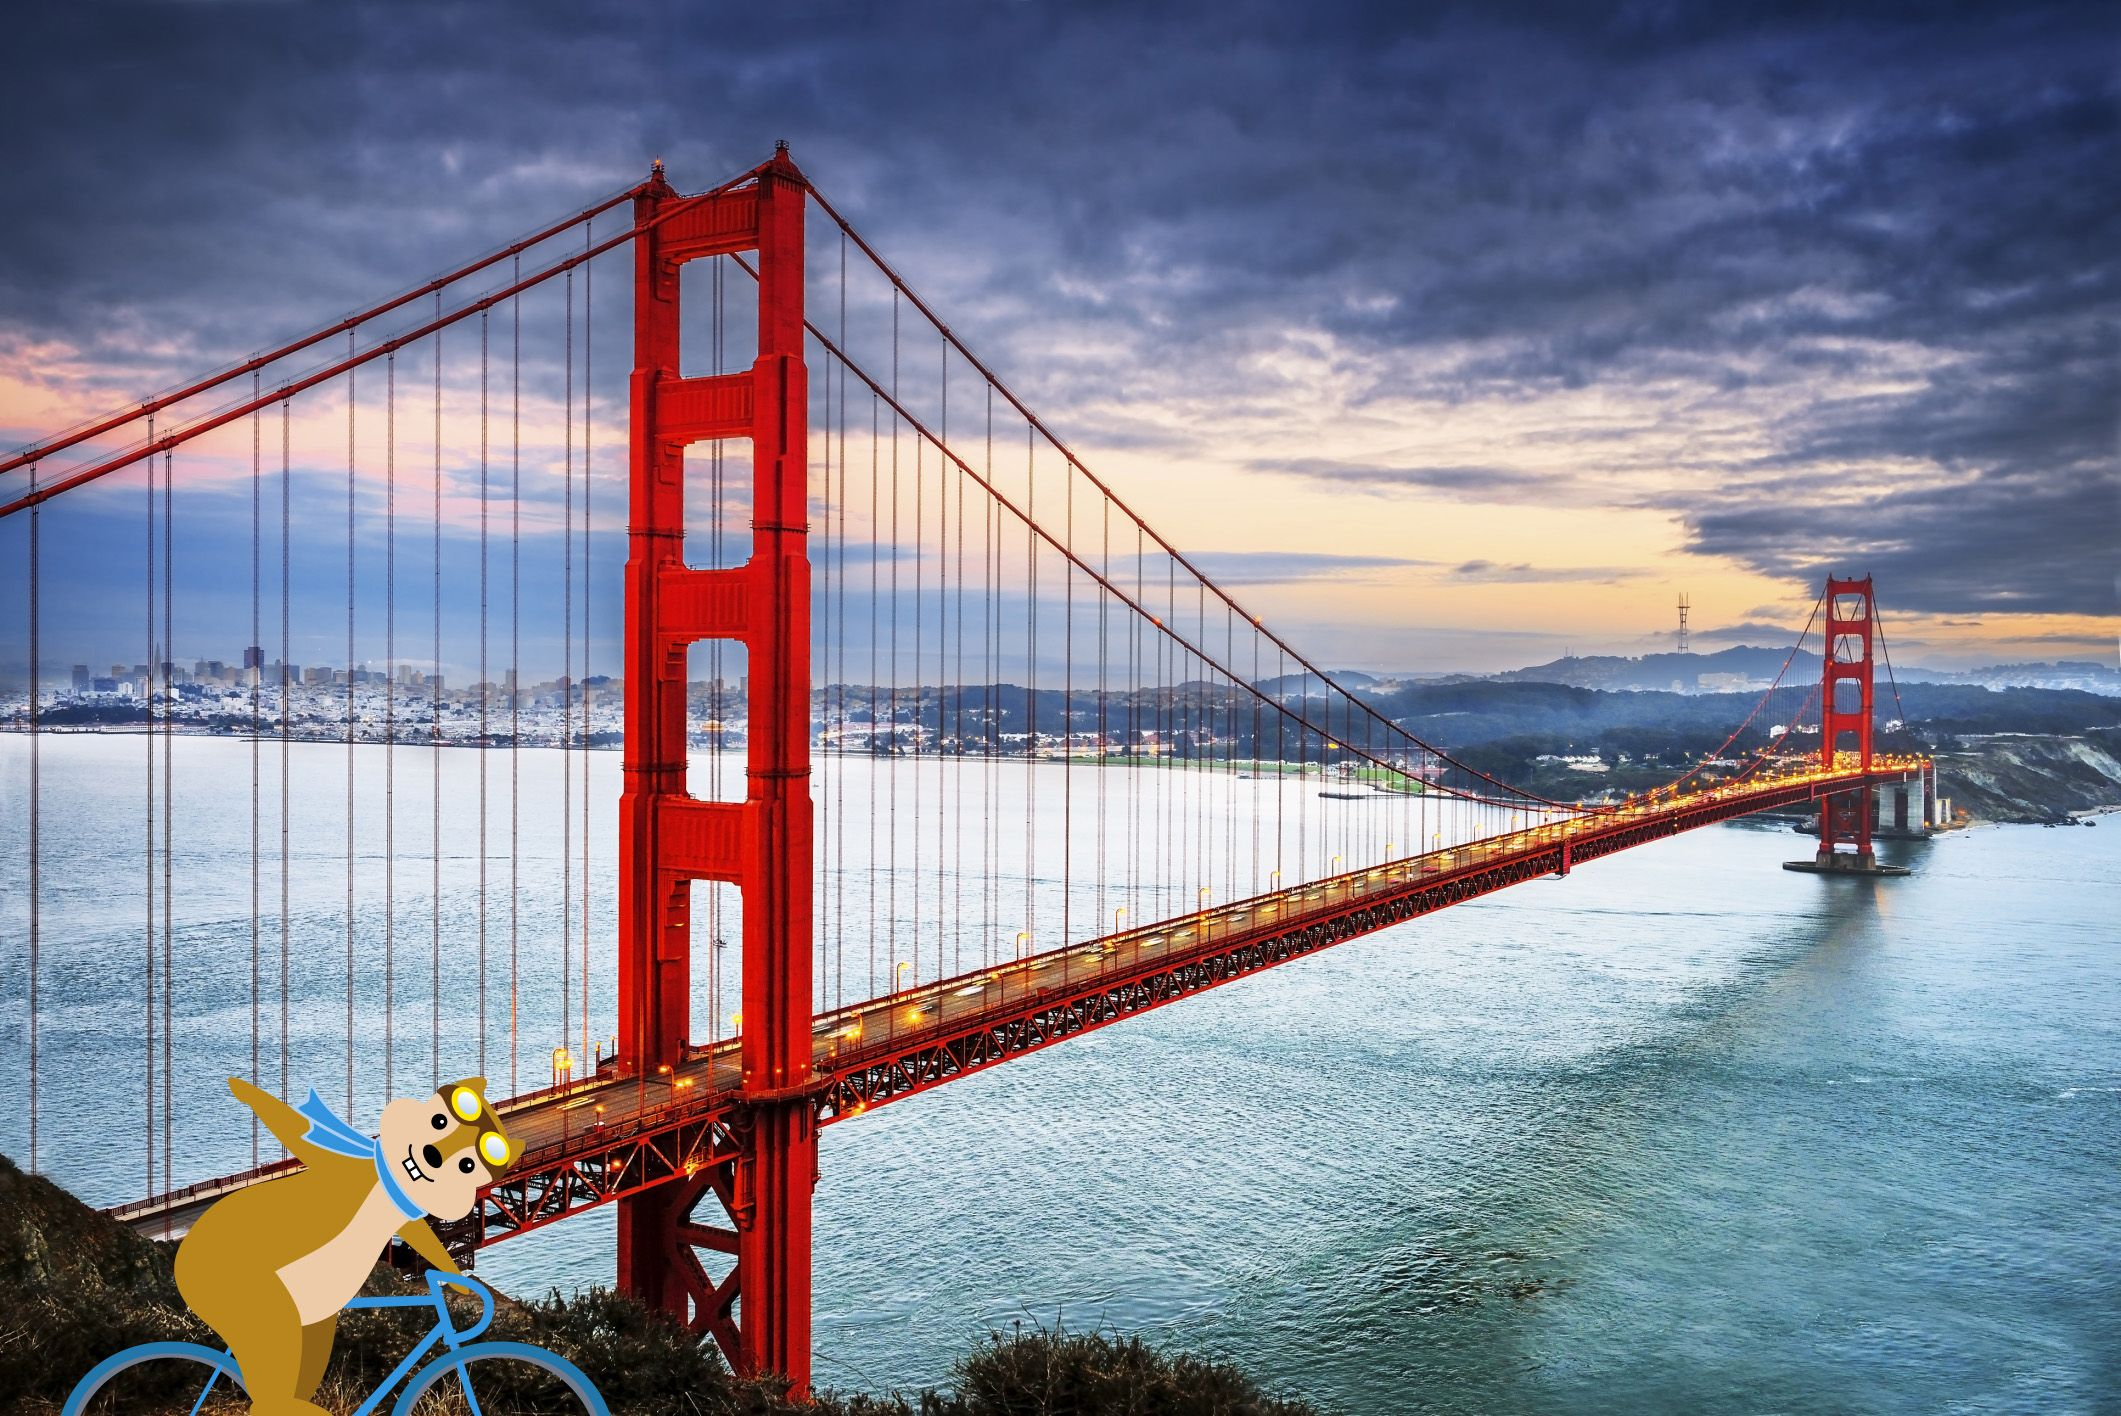 Biking the GG bridge in San Francisco. Search thousands of hotels at once and save up to 60% on your next hotel in San Francisco (or anywhere else!)